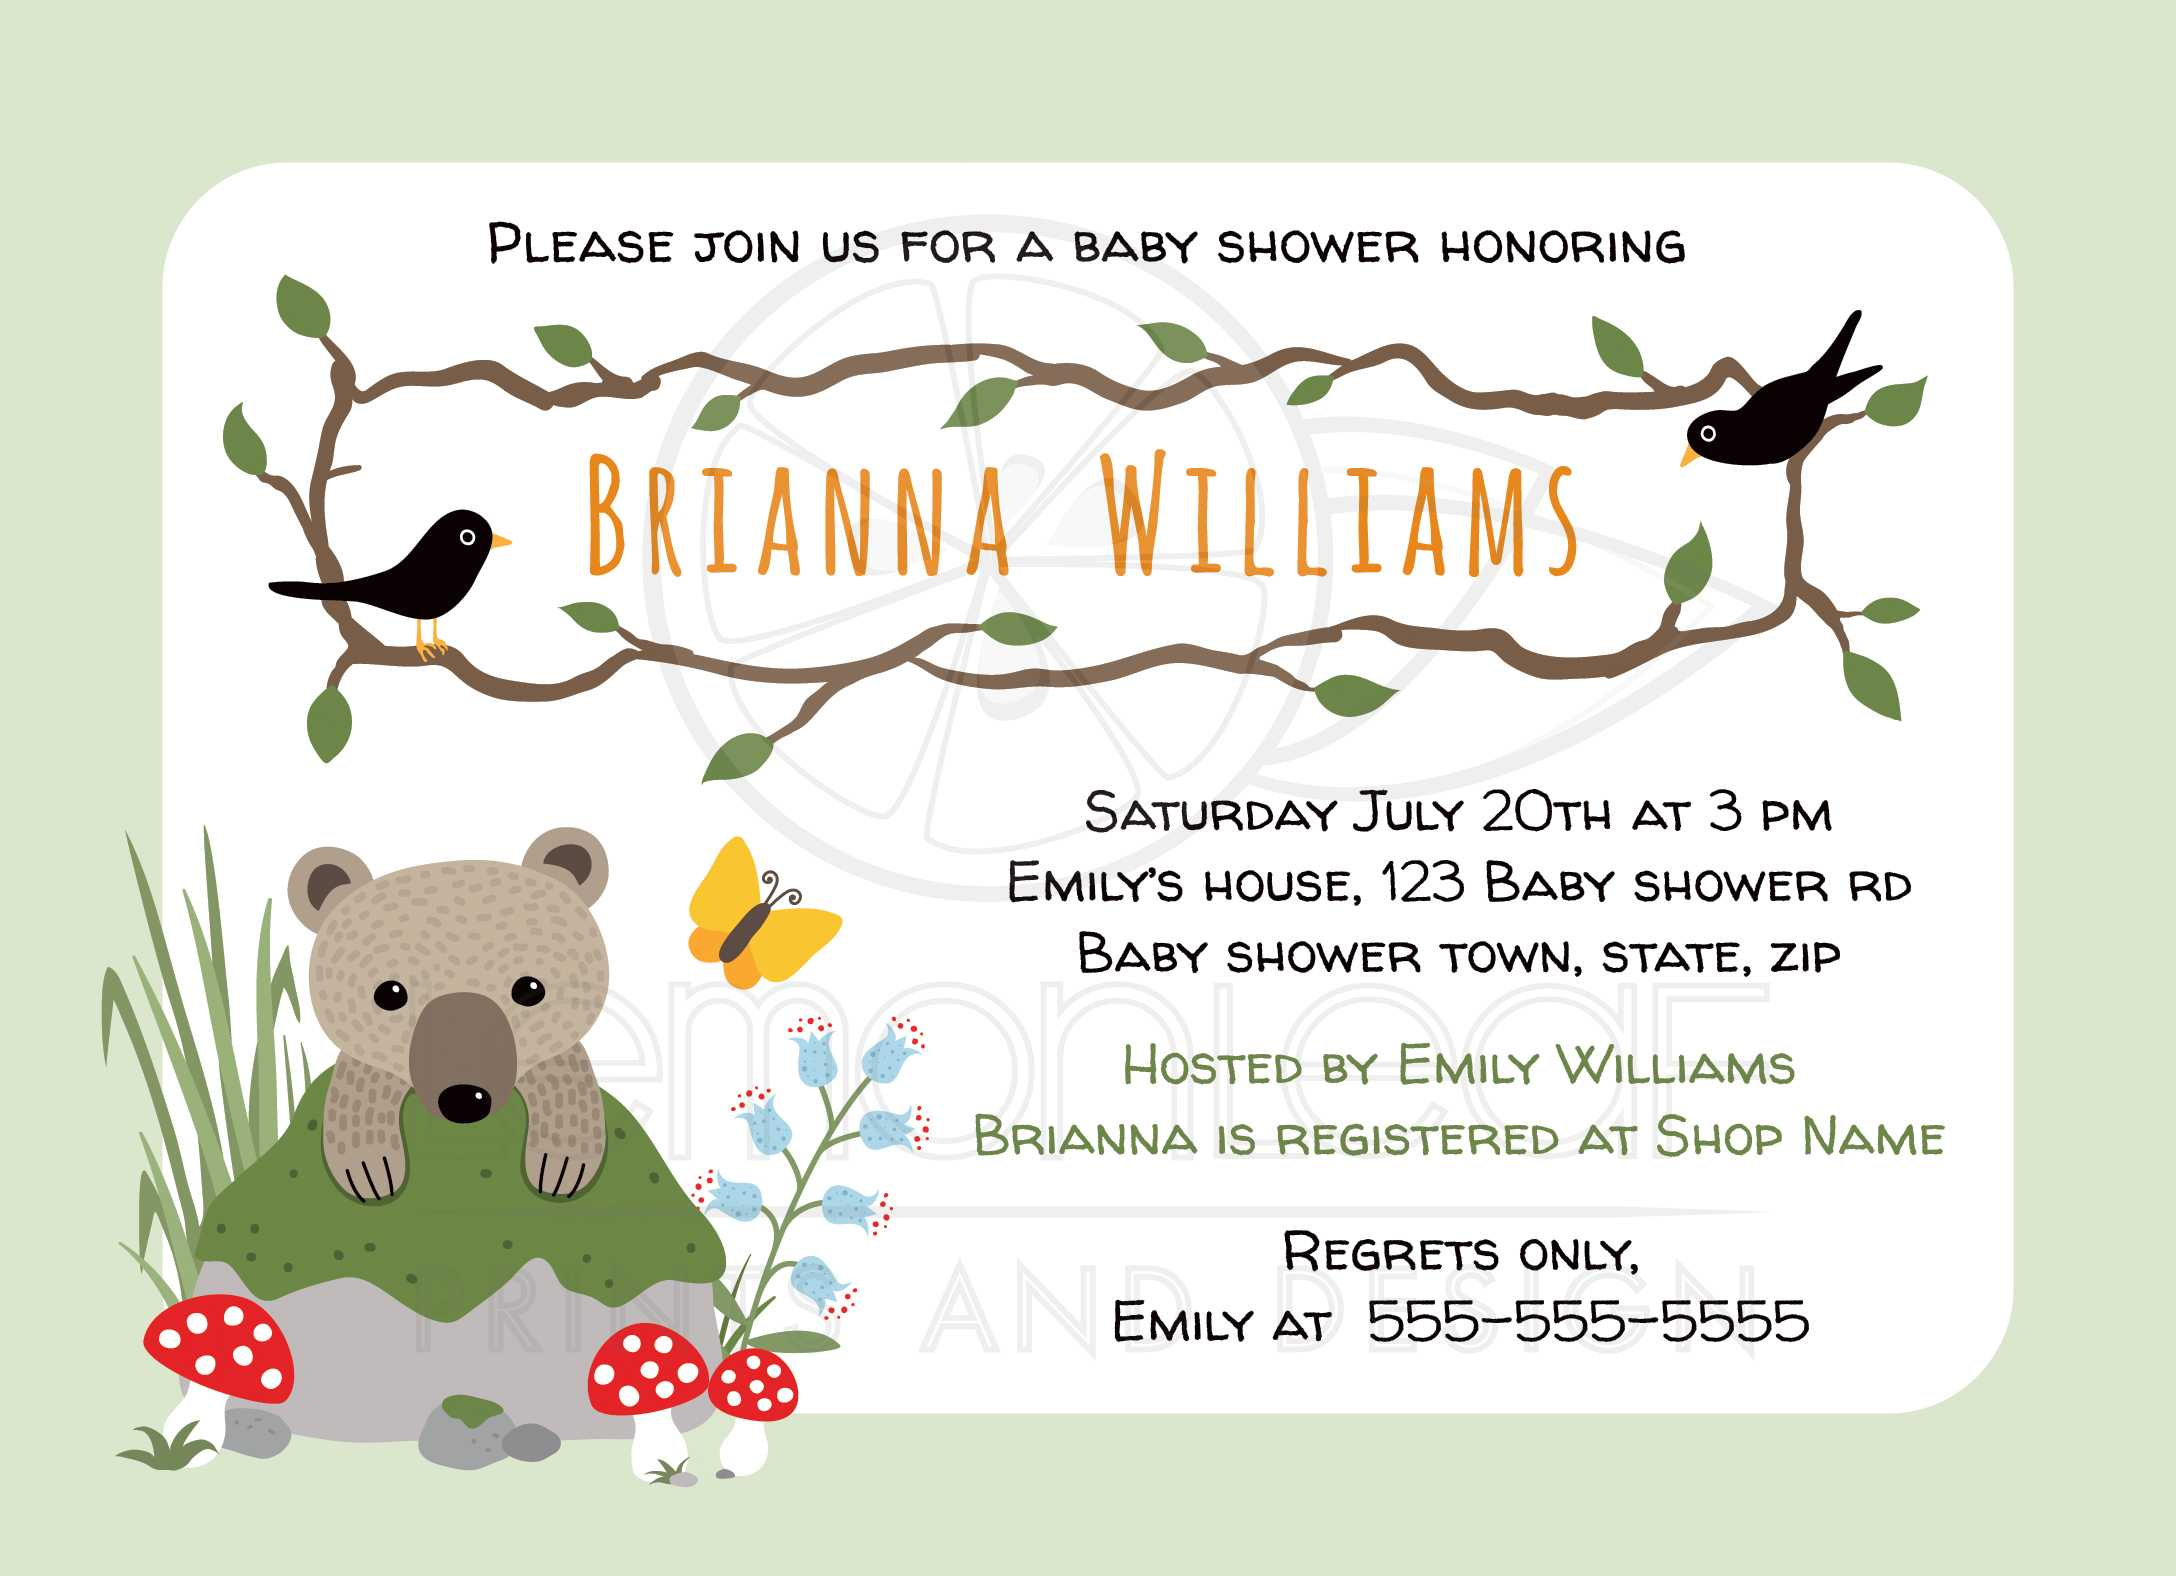 Cute woodland baby shower invitation with bear cub behind mossy rock